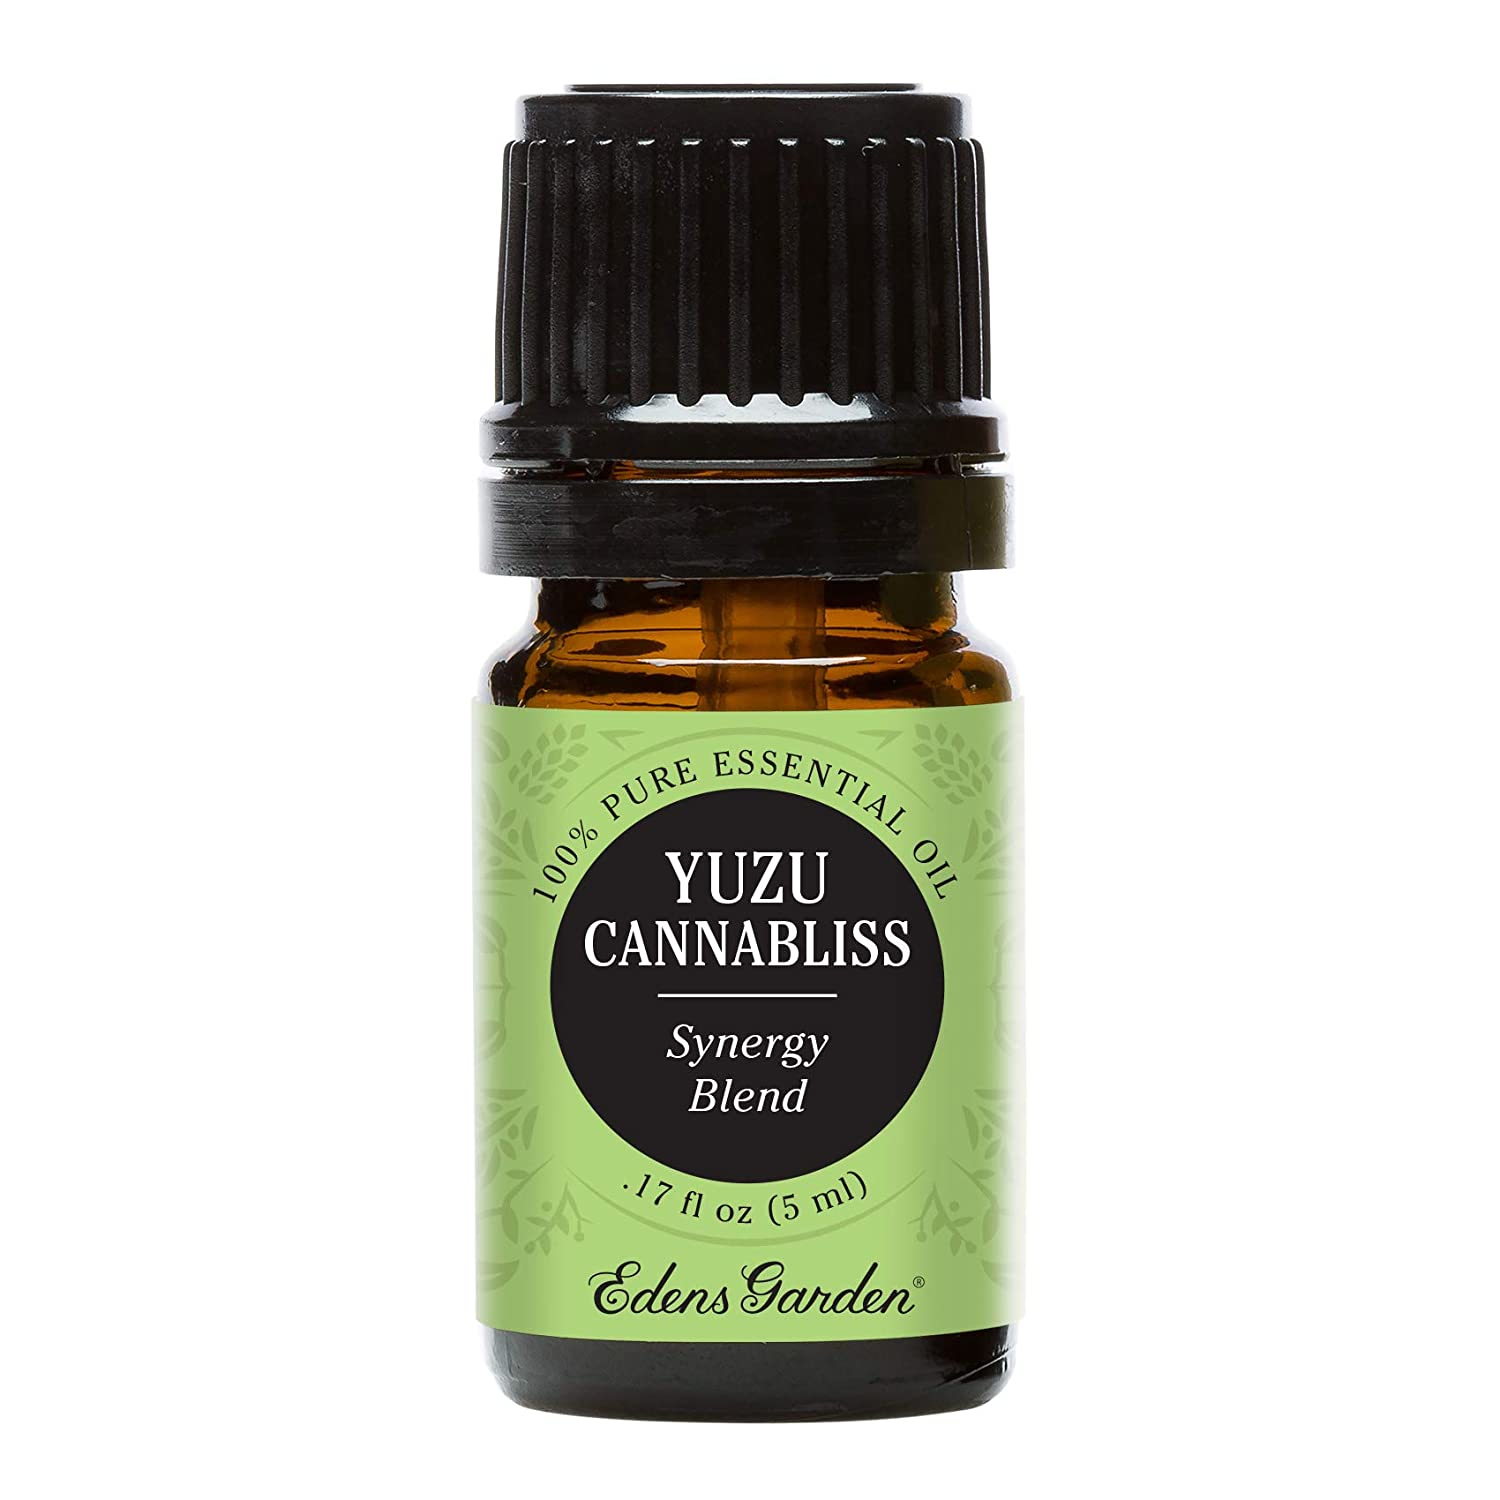 Edens Garden Yuzu Cannabliss Essential Oil Synergy Blend, 100% Pure Therapeutic Grade (Highest Quality Aromatherapy Oils- Inflammation & Pain), 5 ml